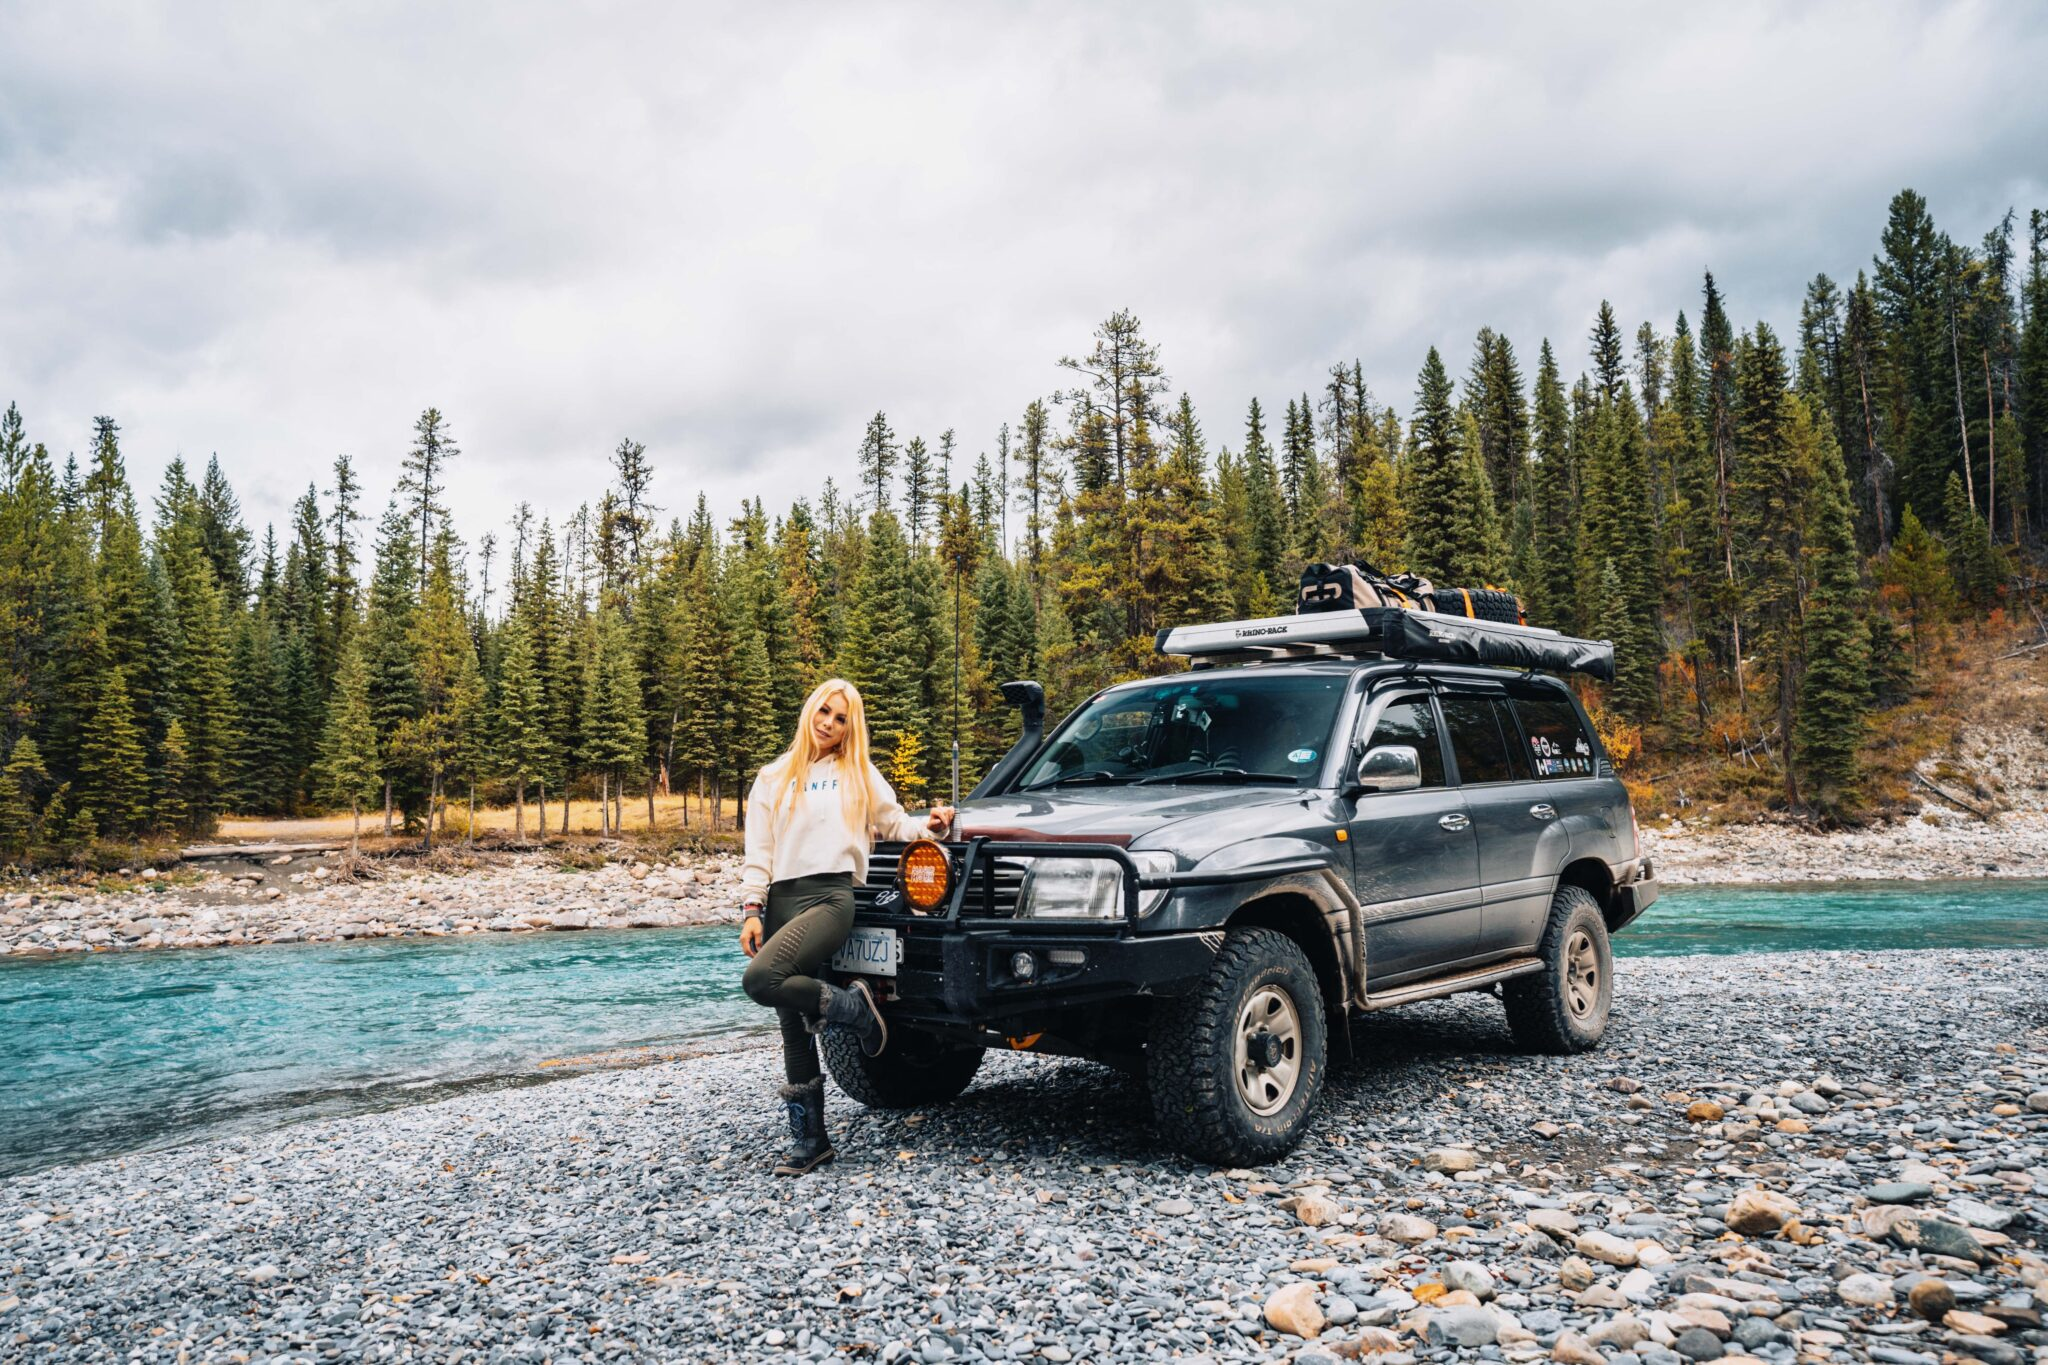 OverlandLady Rockies Banff 56 scaled | Overland Lady by Monique Song